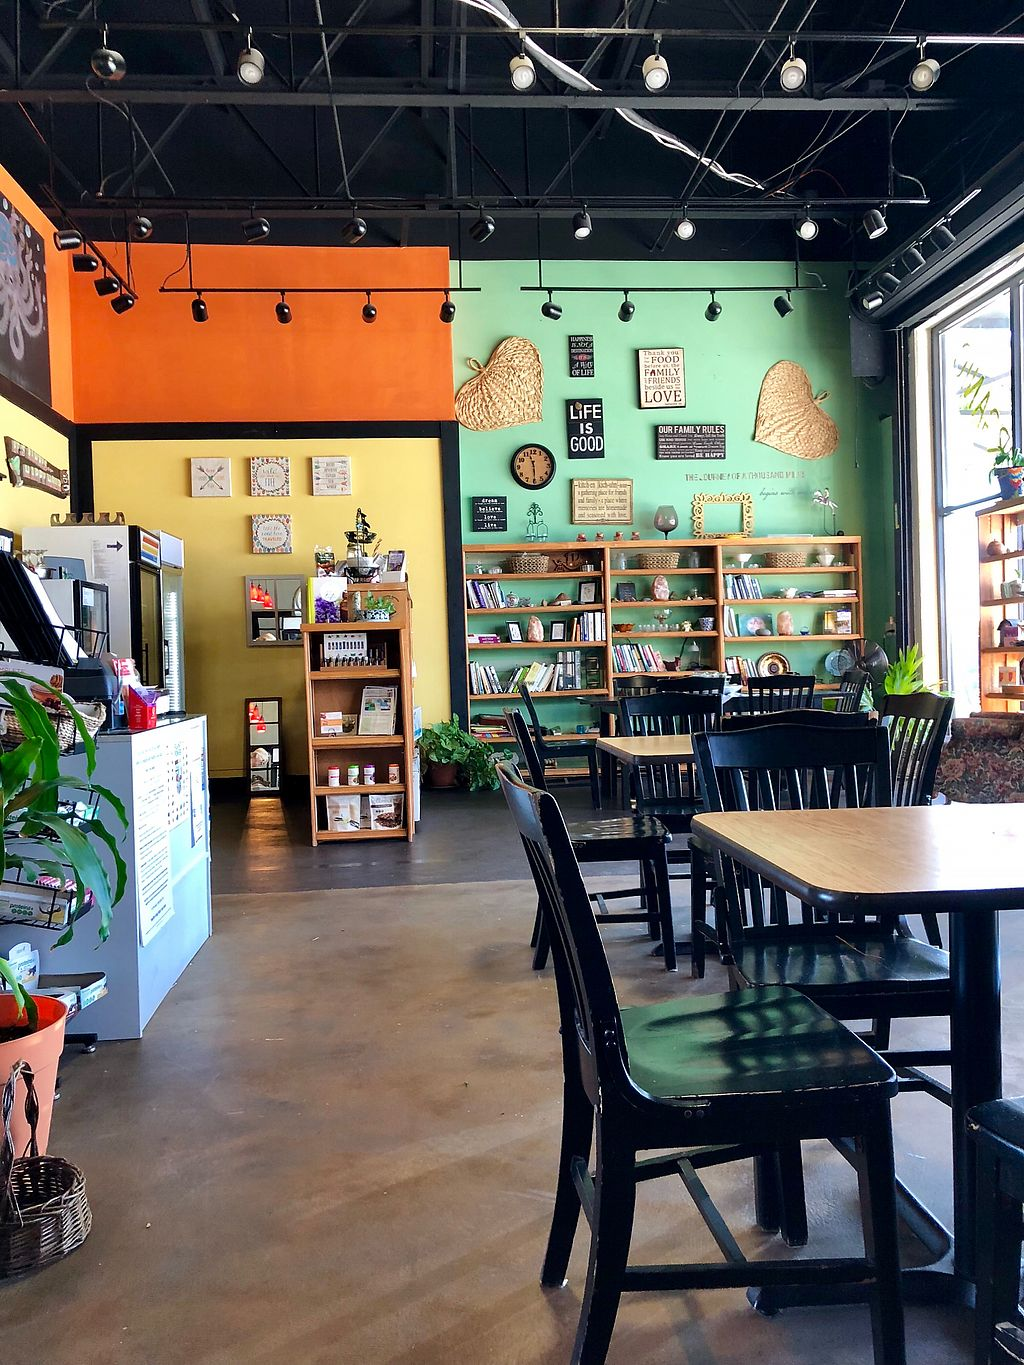 """Photo of Living Green Health Food  by <a href=""""/members/profile/JanMarie"""">JanMarie</a> <br/>Friendly and quaint with a great menu!!! <br/> March 15, 2018  - <a href='/contact/abuse/image/32520/371035'>Report</a>"""